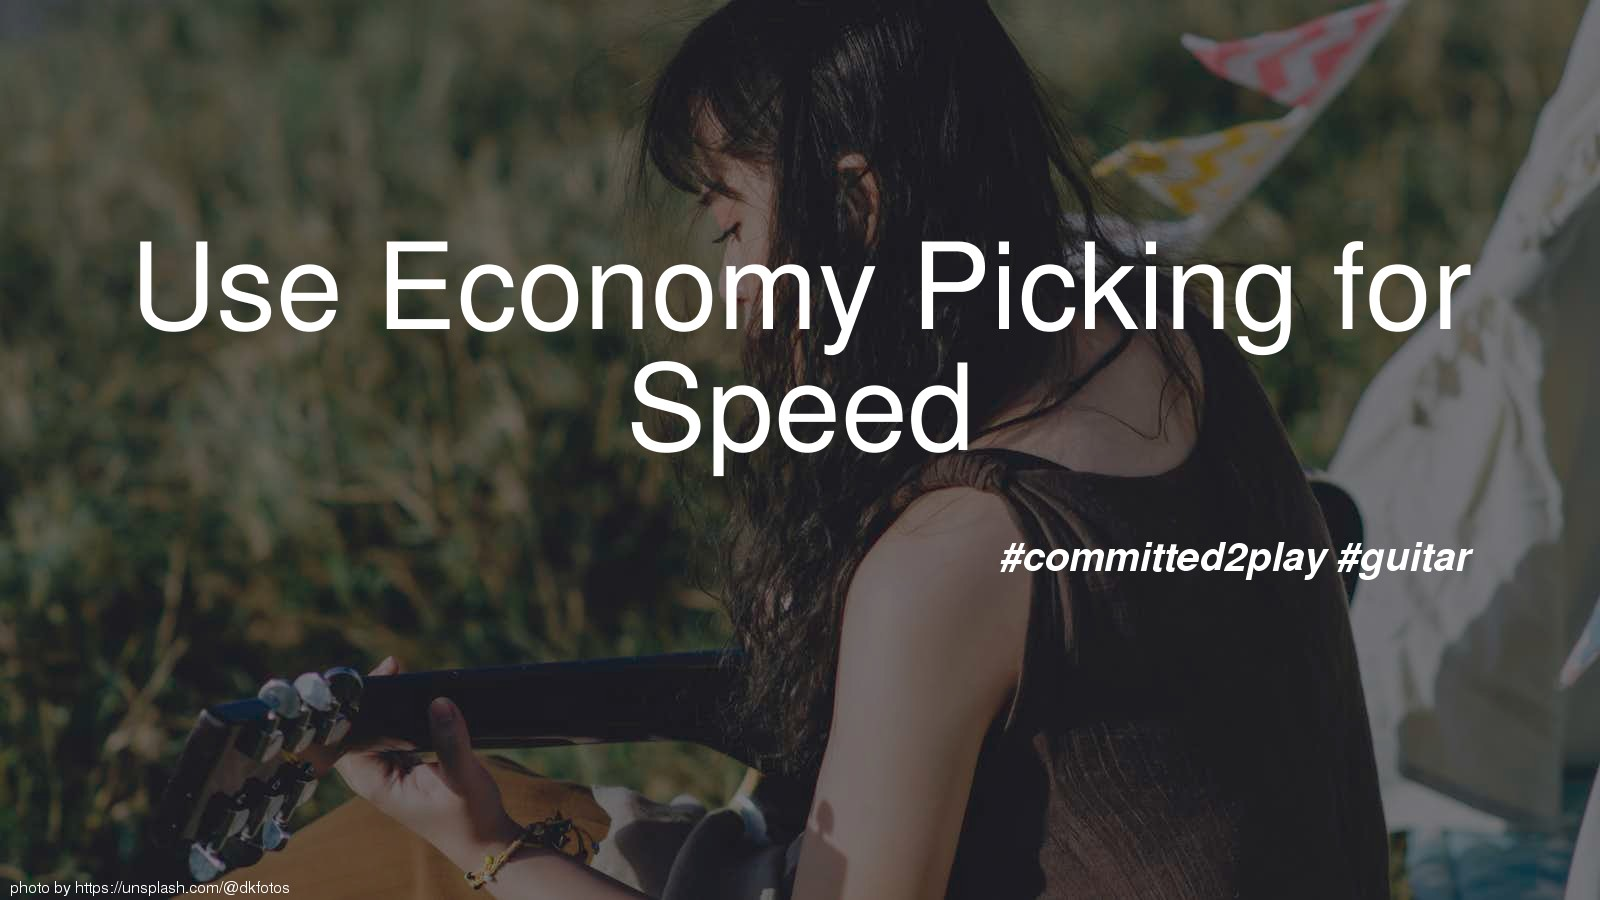 Use Economy Picking for Speed